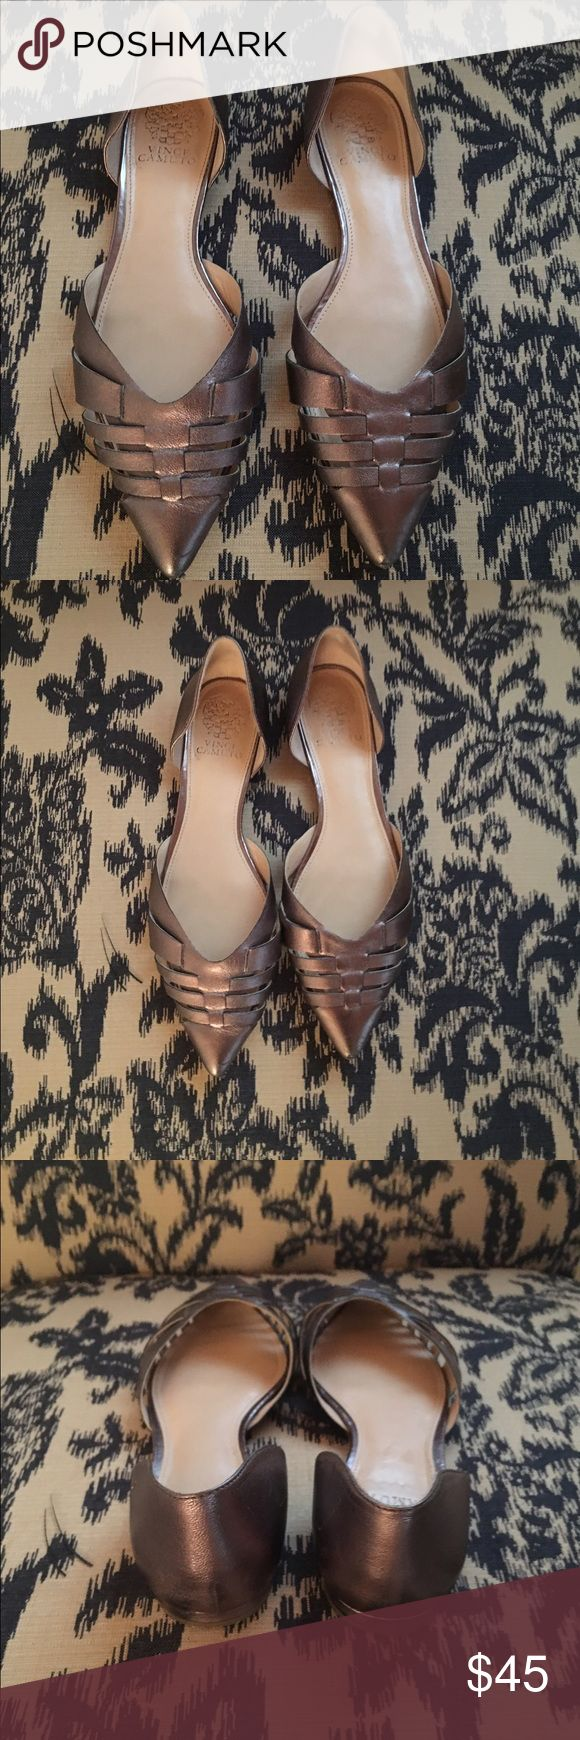 Vince Camuto Metalic Flats Size 9 Size 9 metallic flats with detailed pointed toe. Amazing condition, worn twice! Vince Camuto Shoes Flats & Loafers